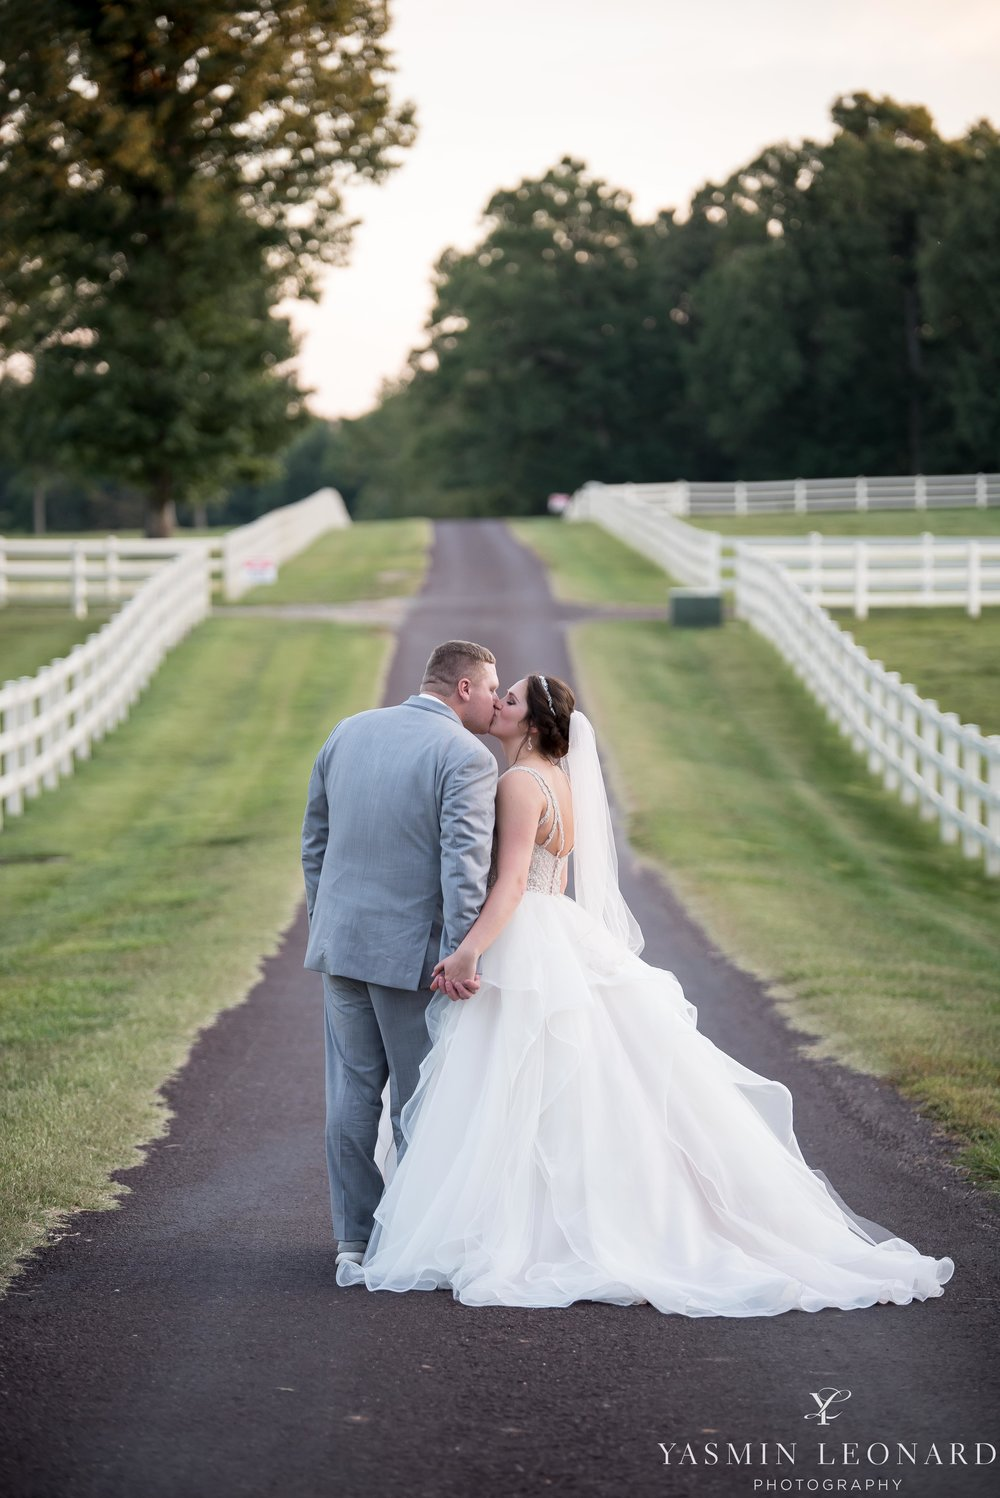 Reverie Place - Level Cross - Randleman Wedding Venues - High Point Wedding Photographer - Yasmin Leonard Photography-45.jpg